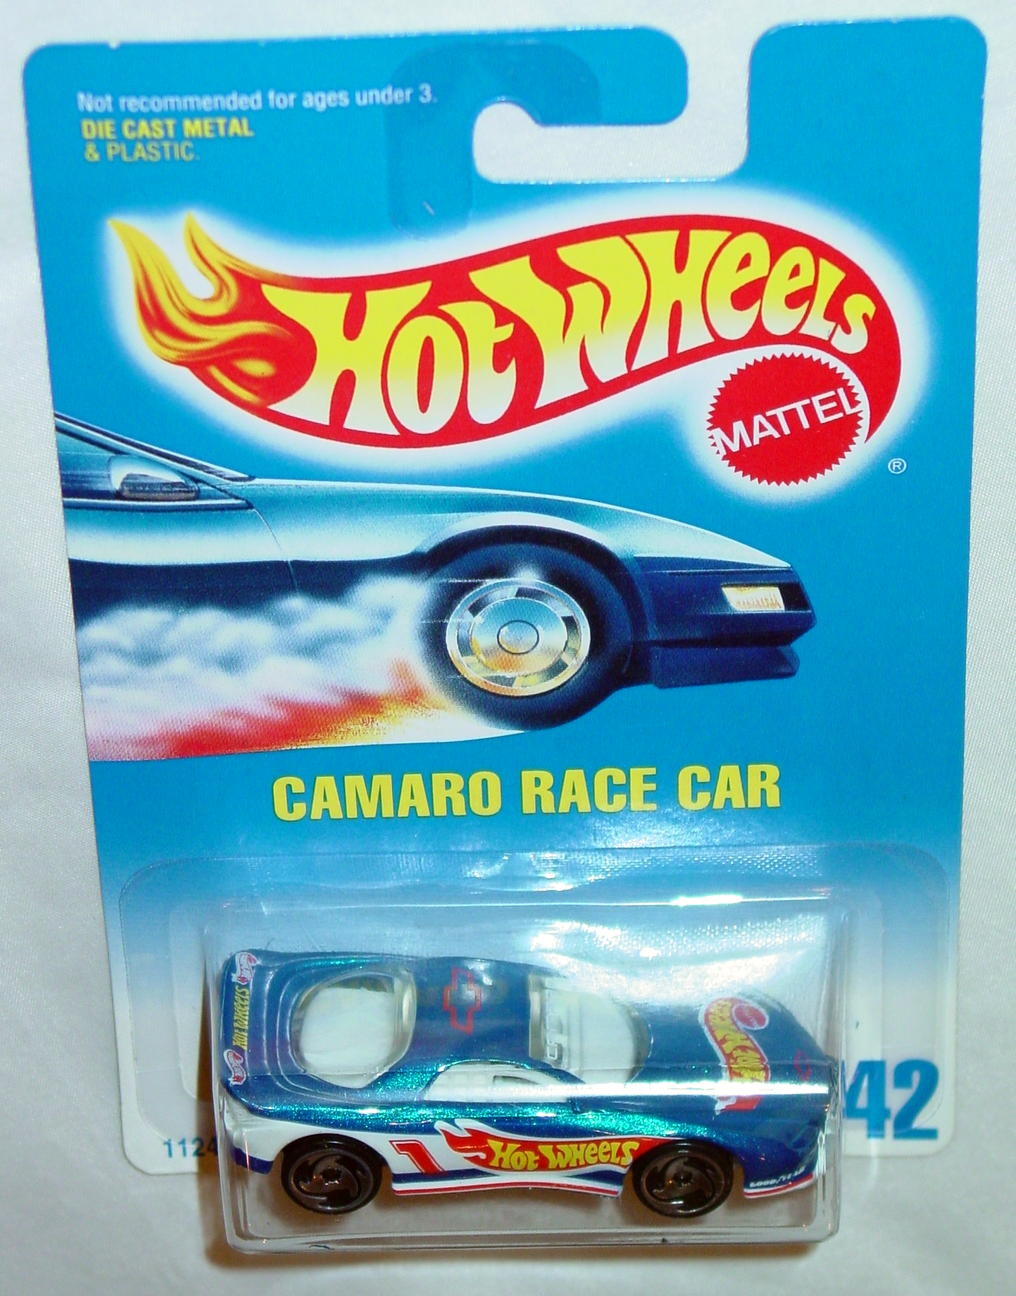 Blackwalls 11243 - 242 Camaro Race Car met ble DW3